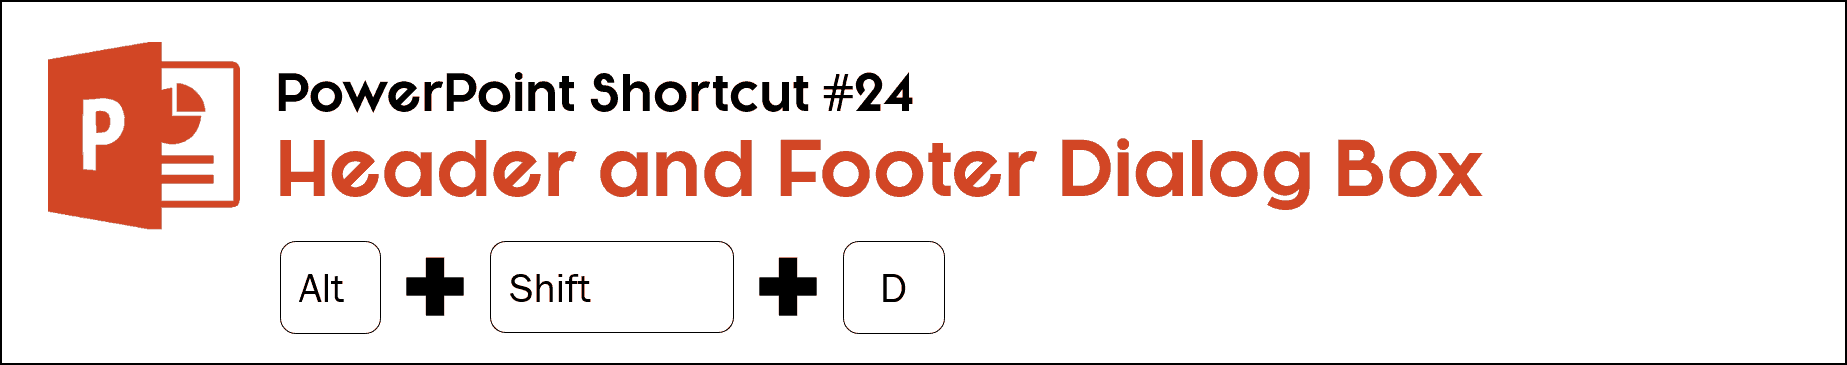 To open the header and footer dialog box in PowerPoint, hit Alt plus Shift plus D on your keyboard